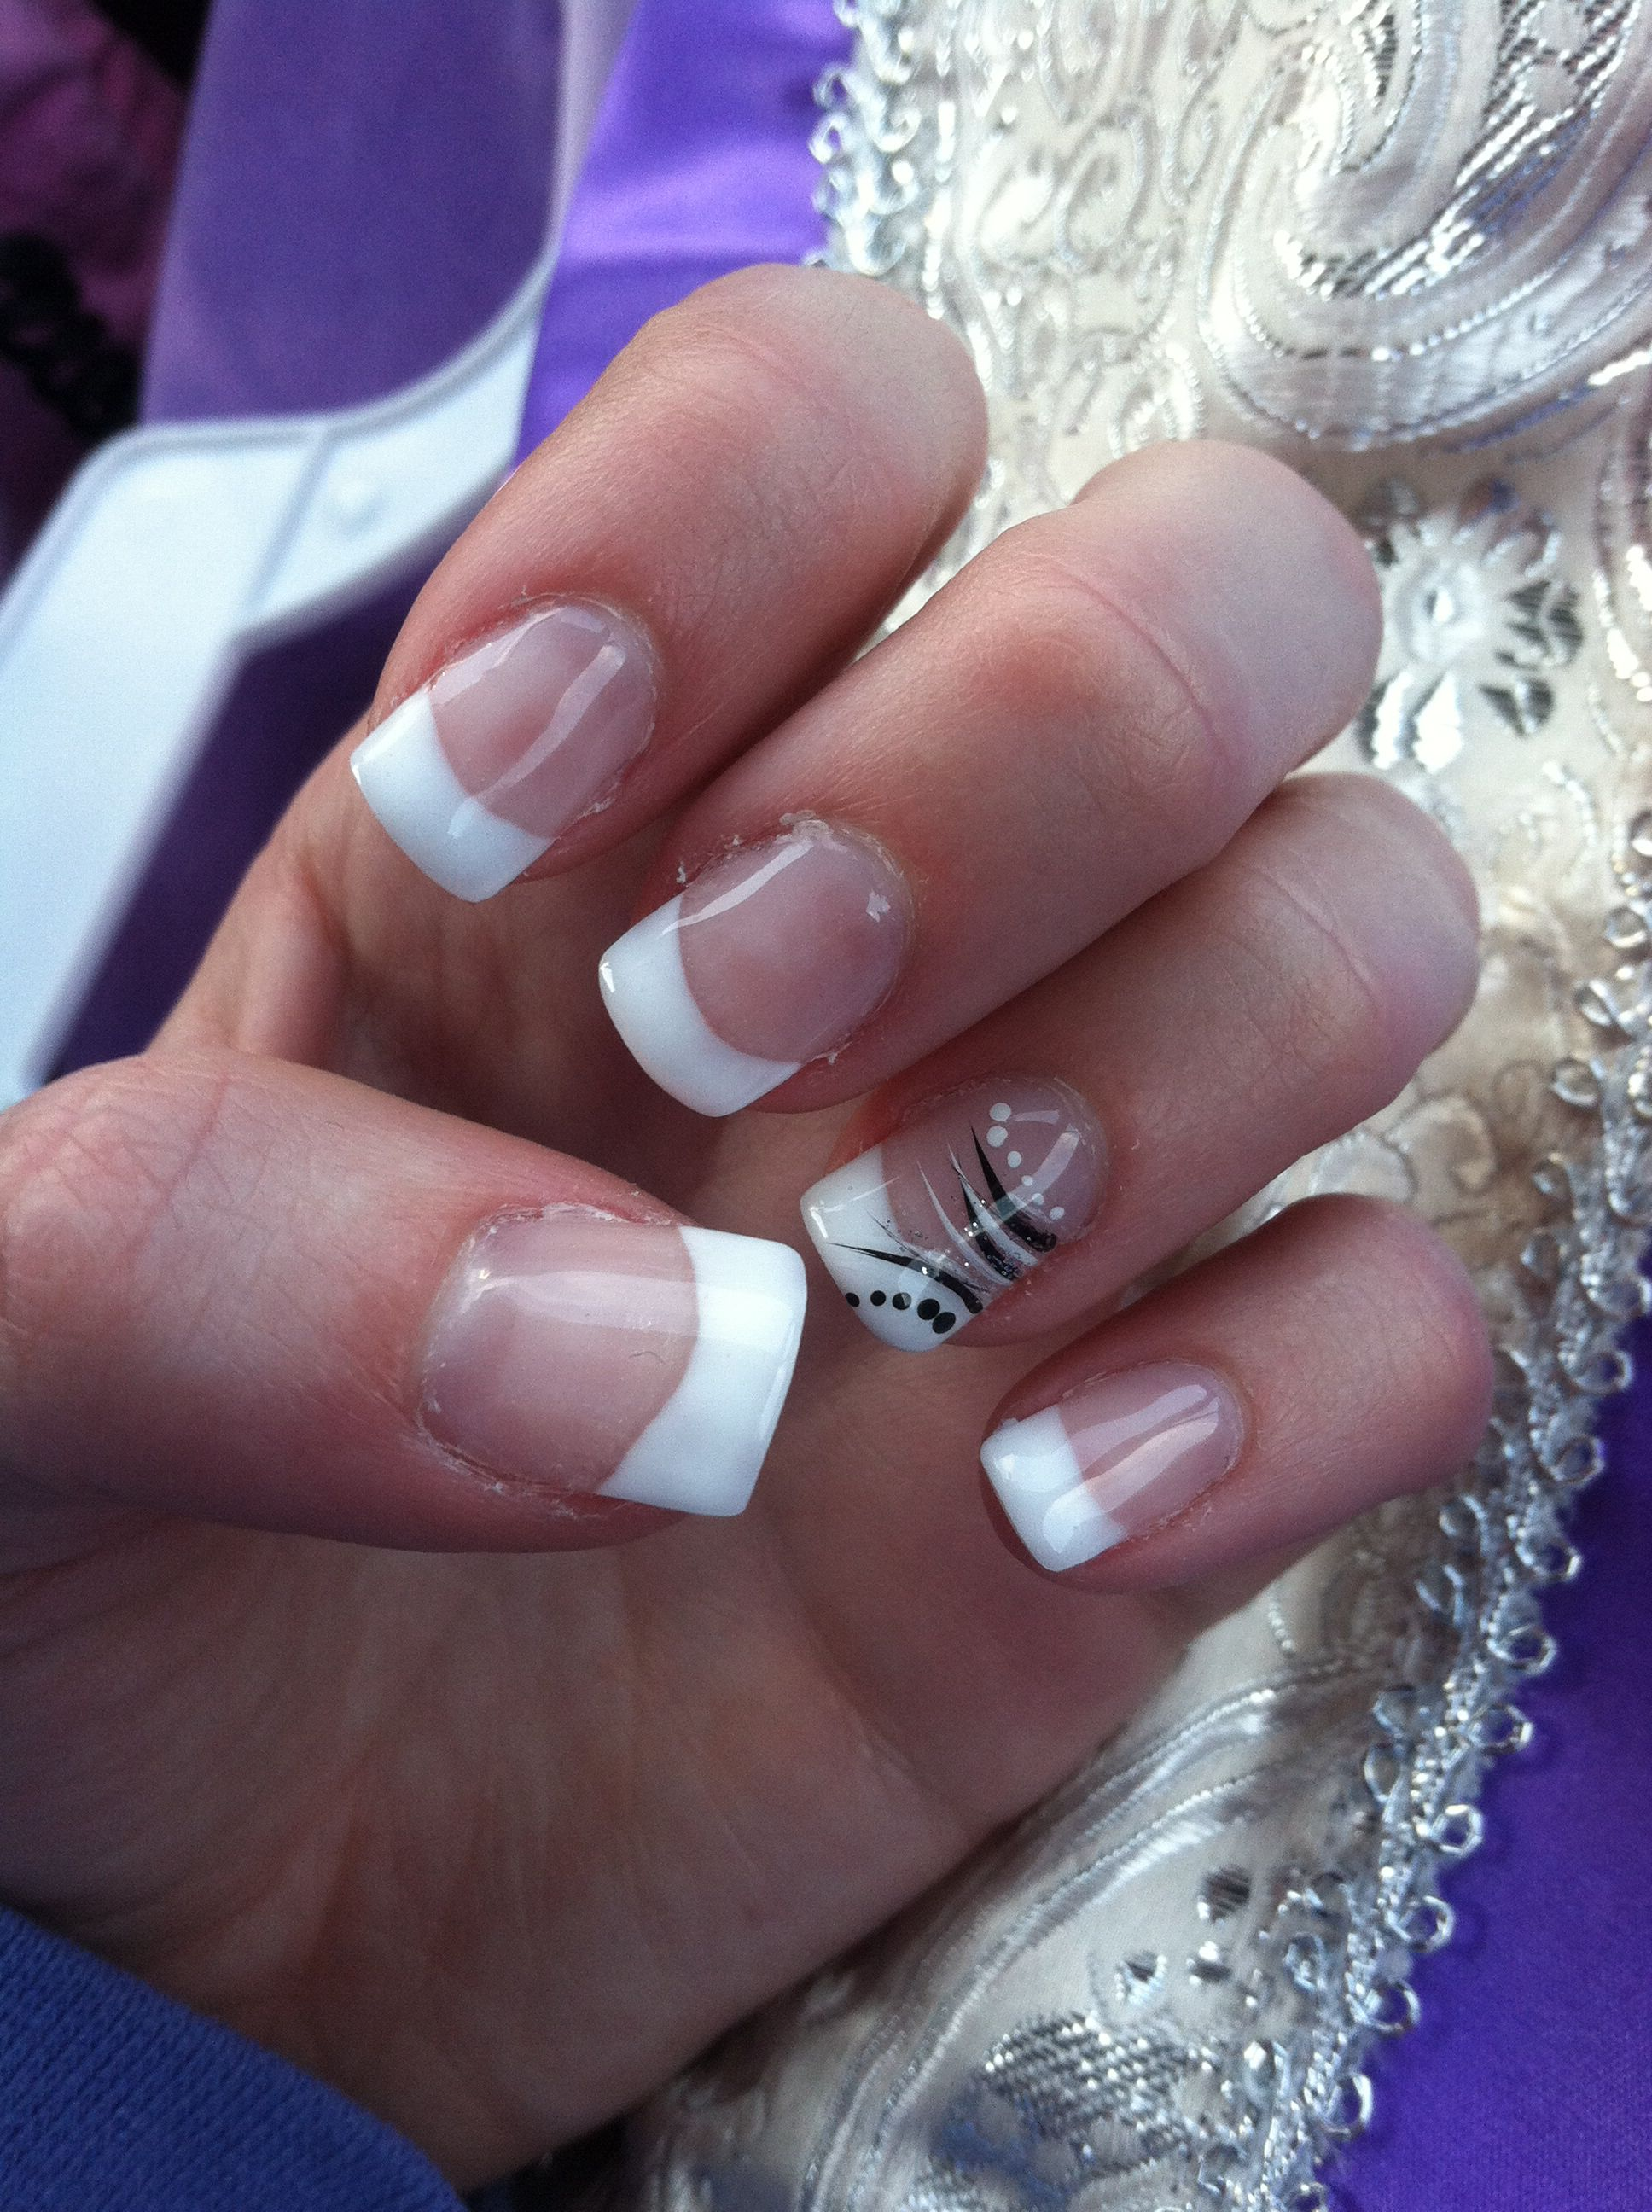 french manicure gel nails with design | Nails | Pinterest | Manicure ...